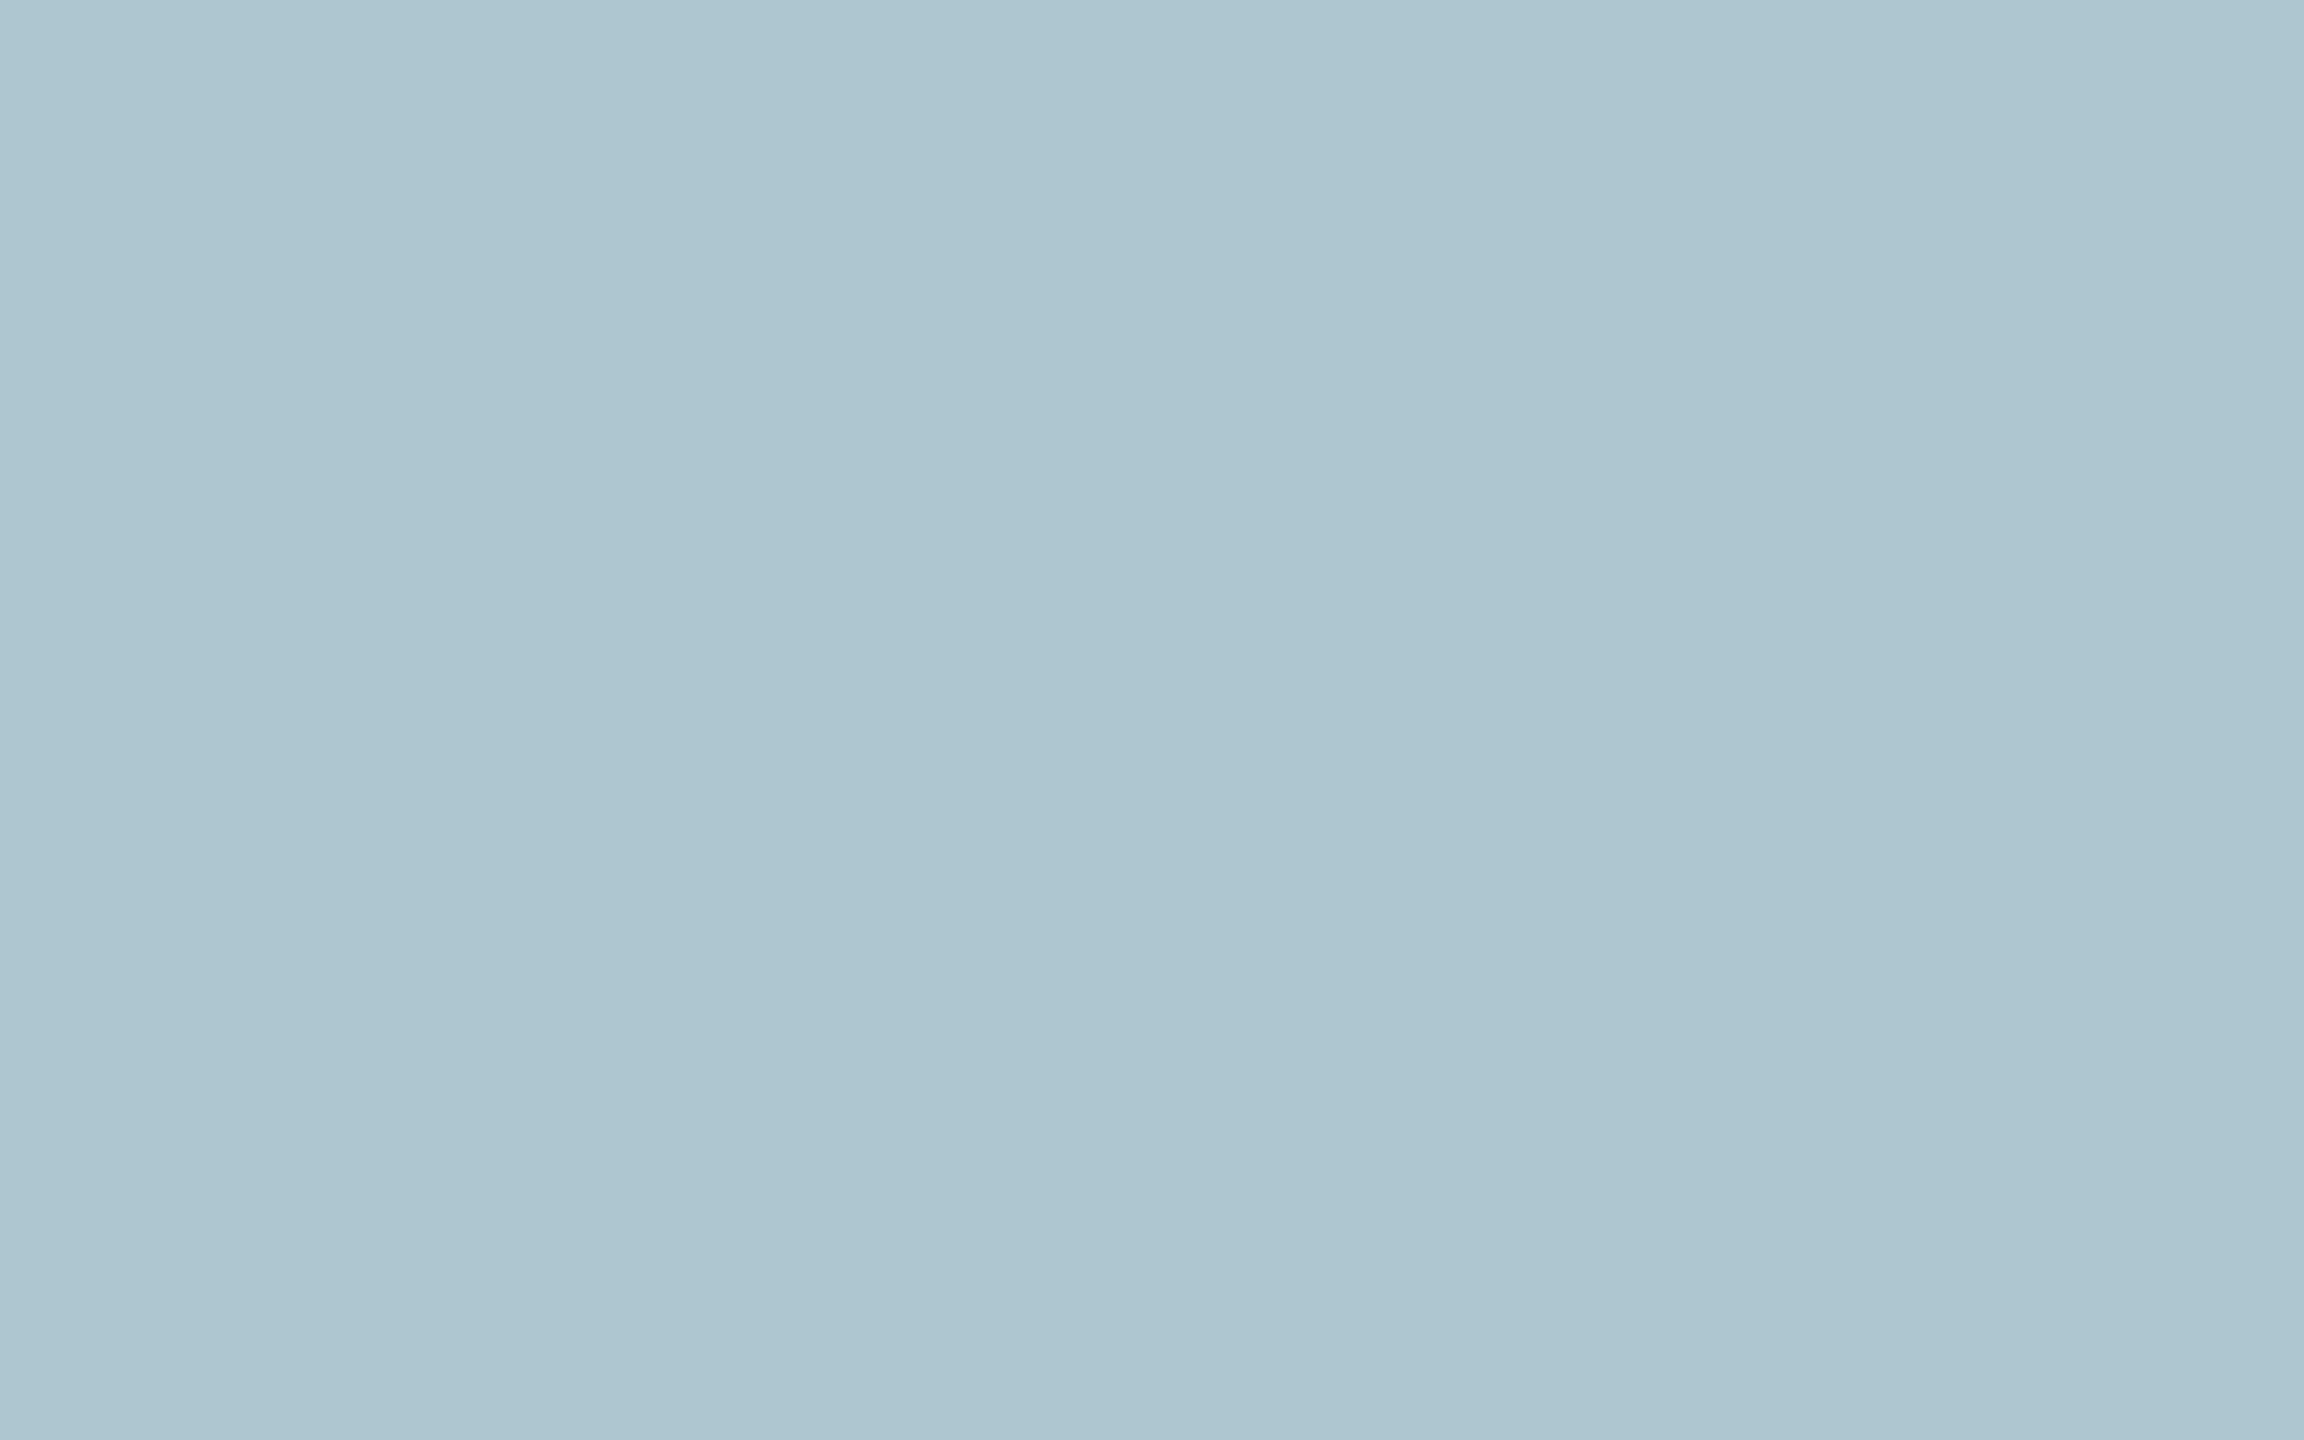 2304x1440 Pastel Blue Solid Color Background